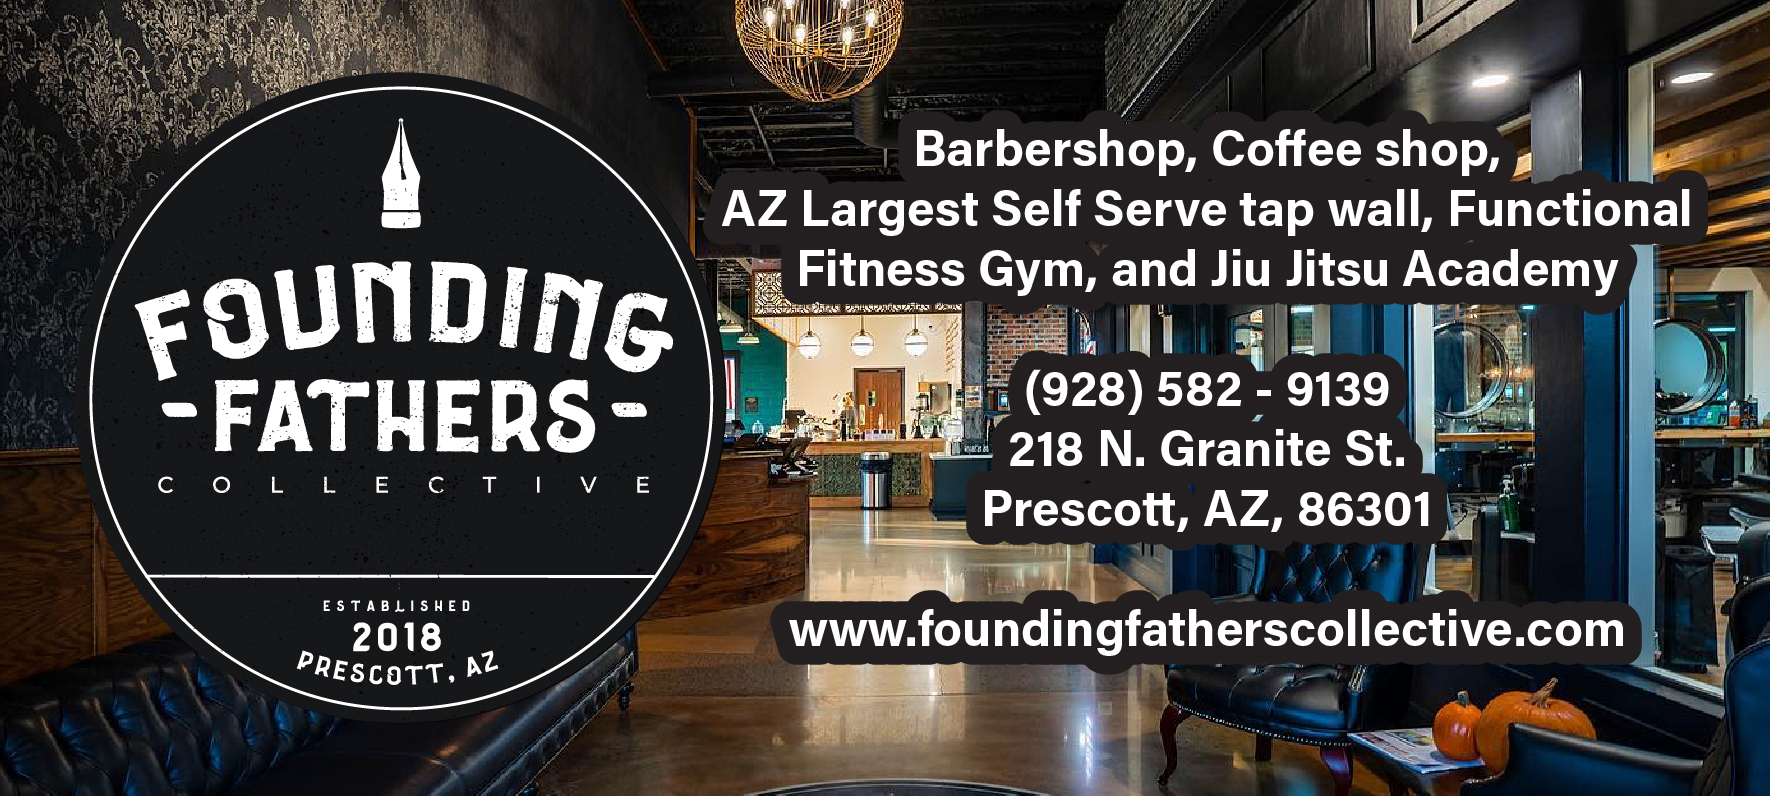 Founding Fathers Collective